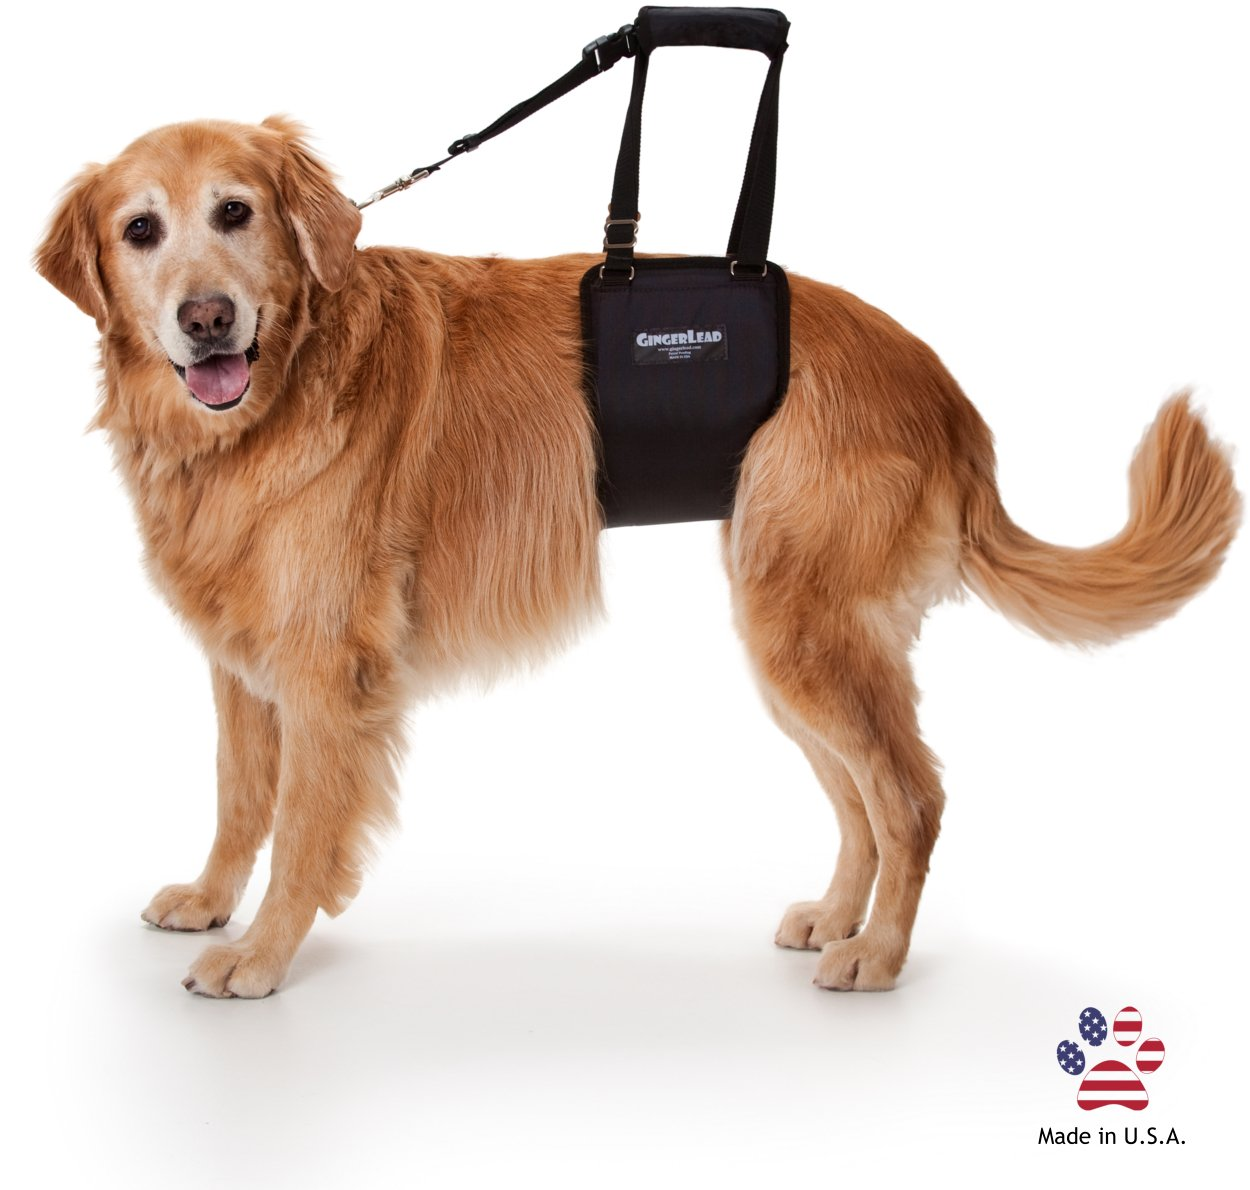 Harness For Dogs With Hip Support Wire Center Coded Lock Kit Hqs1436 Simple Electronic Combination Circuit Amazon Com Gingerlead Dog Rehabilitation Rh Brace Large